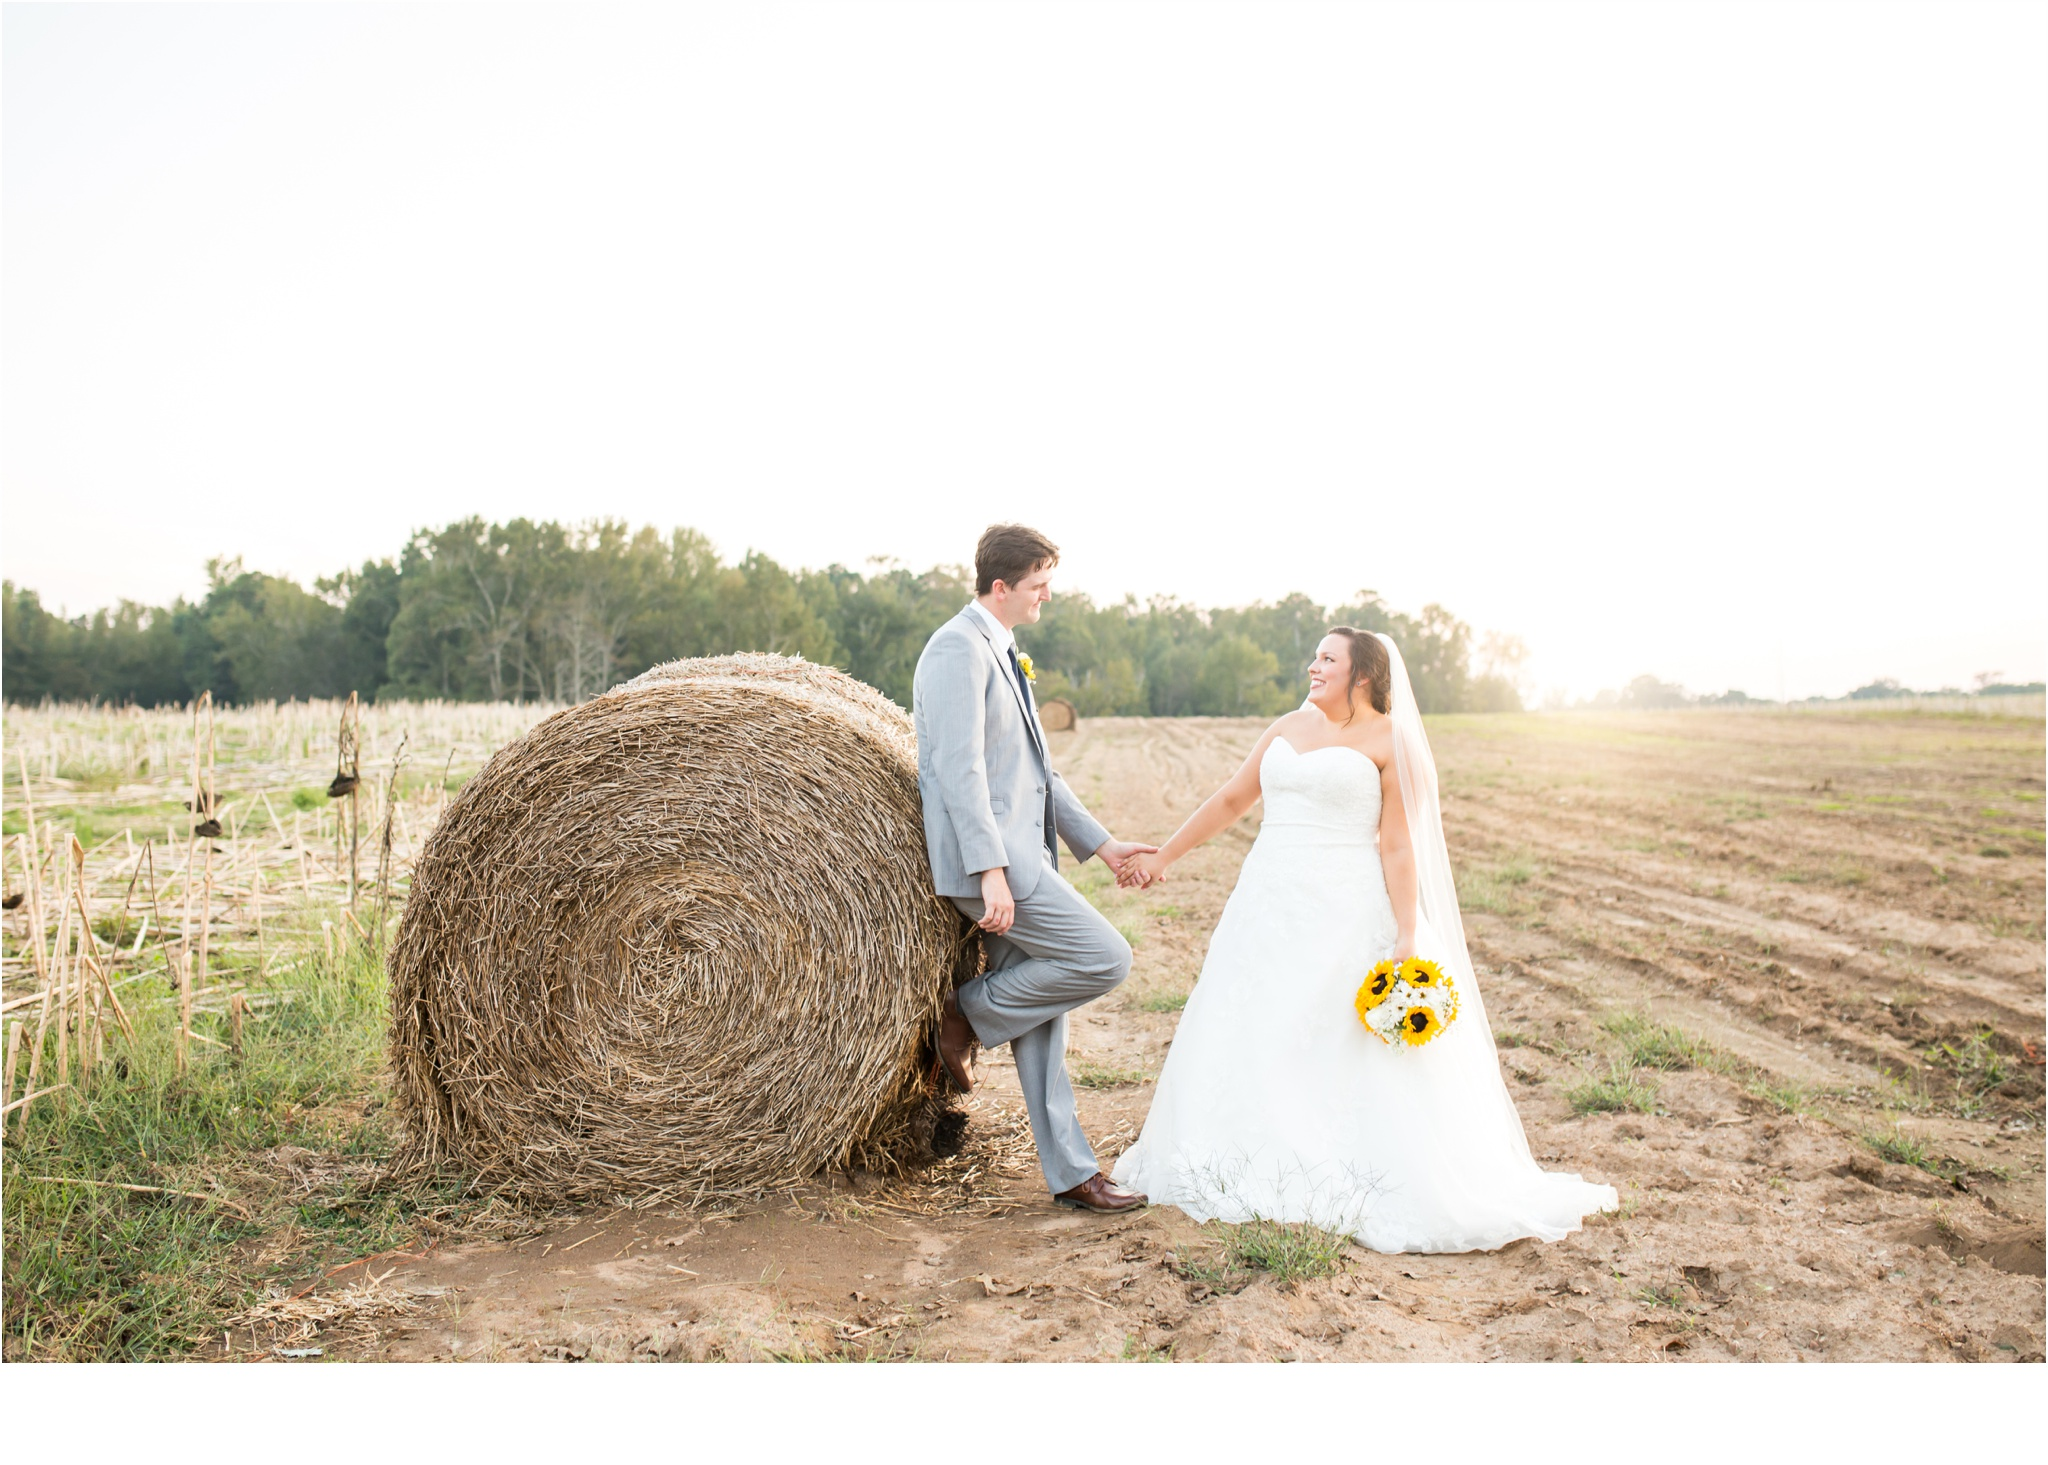 Rainey_Gregg_Photography_St._Simons_Island_Georgia_California_Wedding_Portrait_Photography_0346.jpg